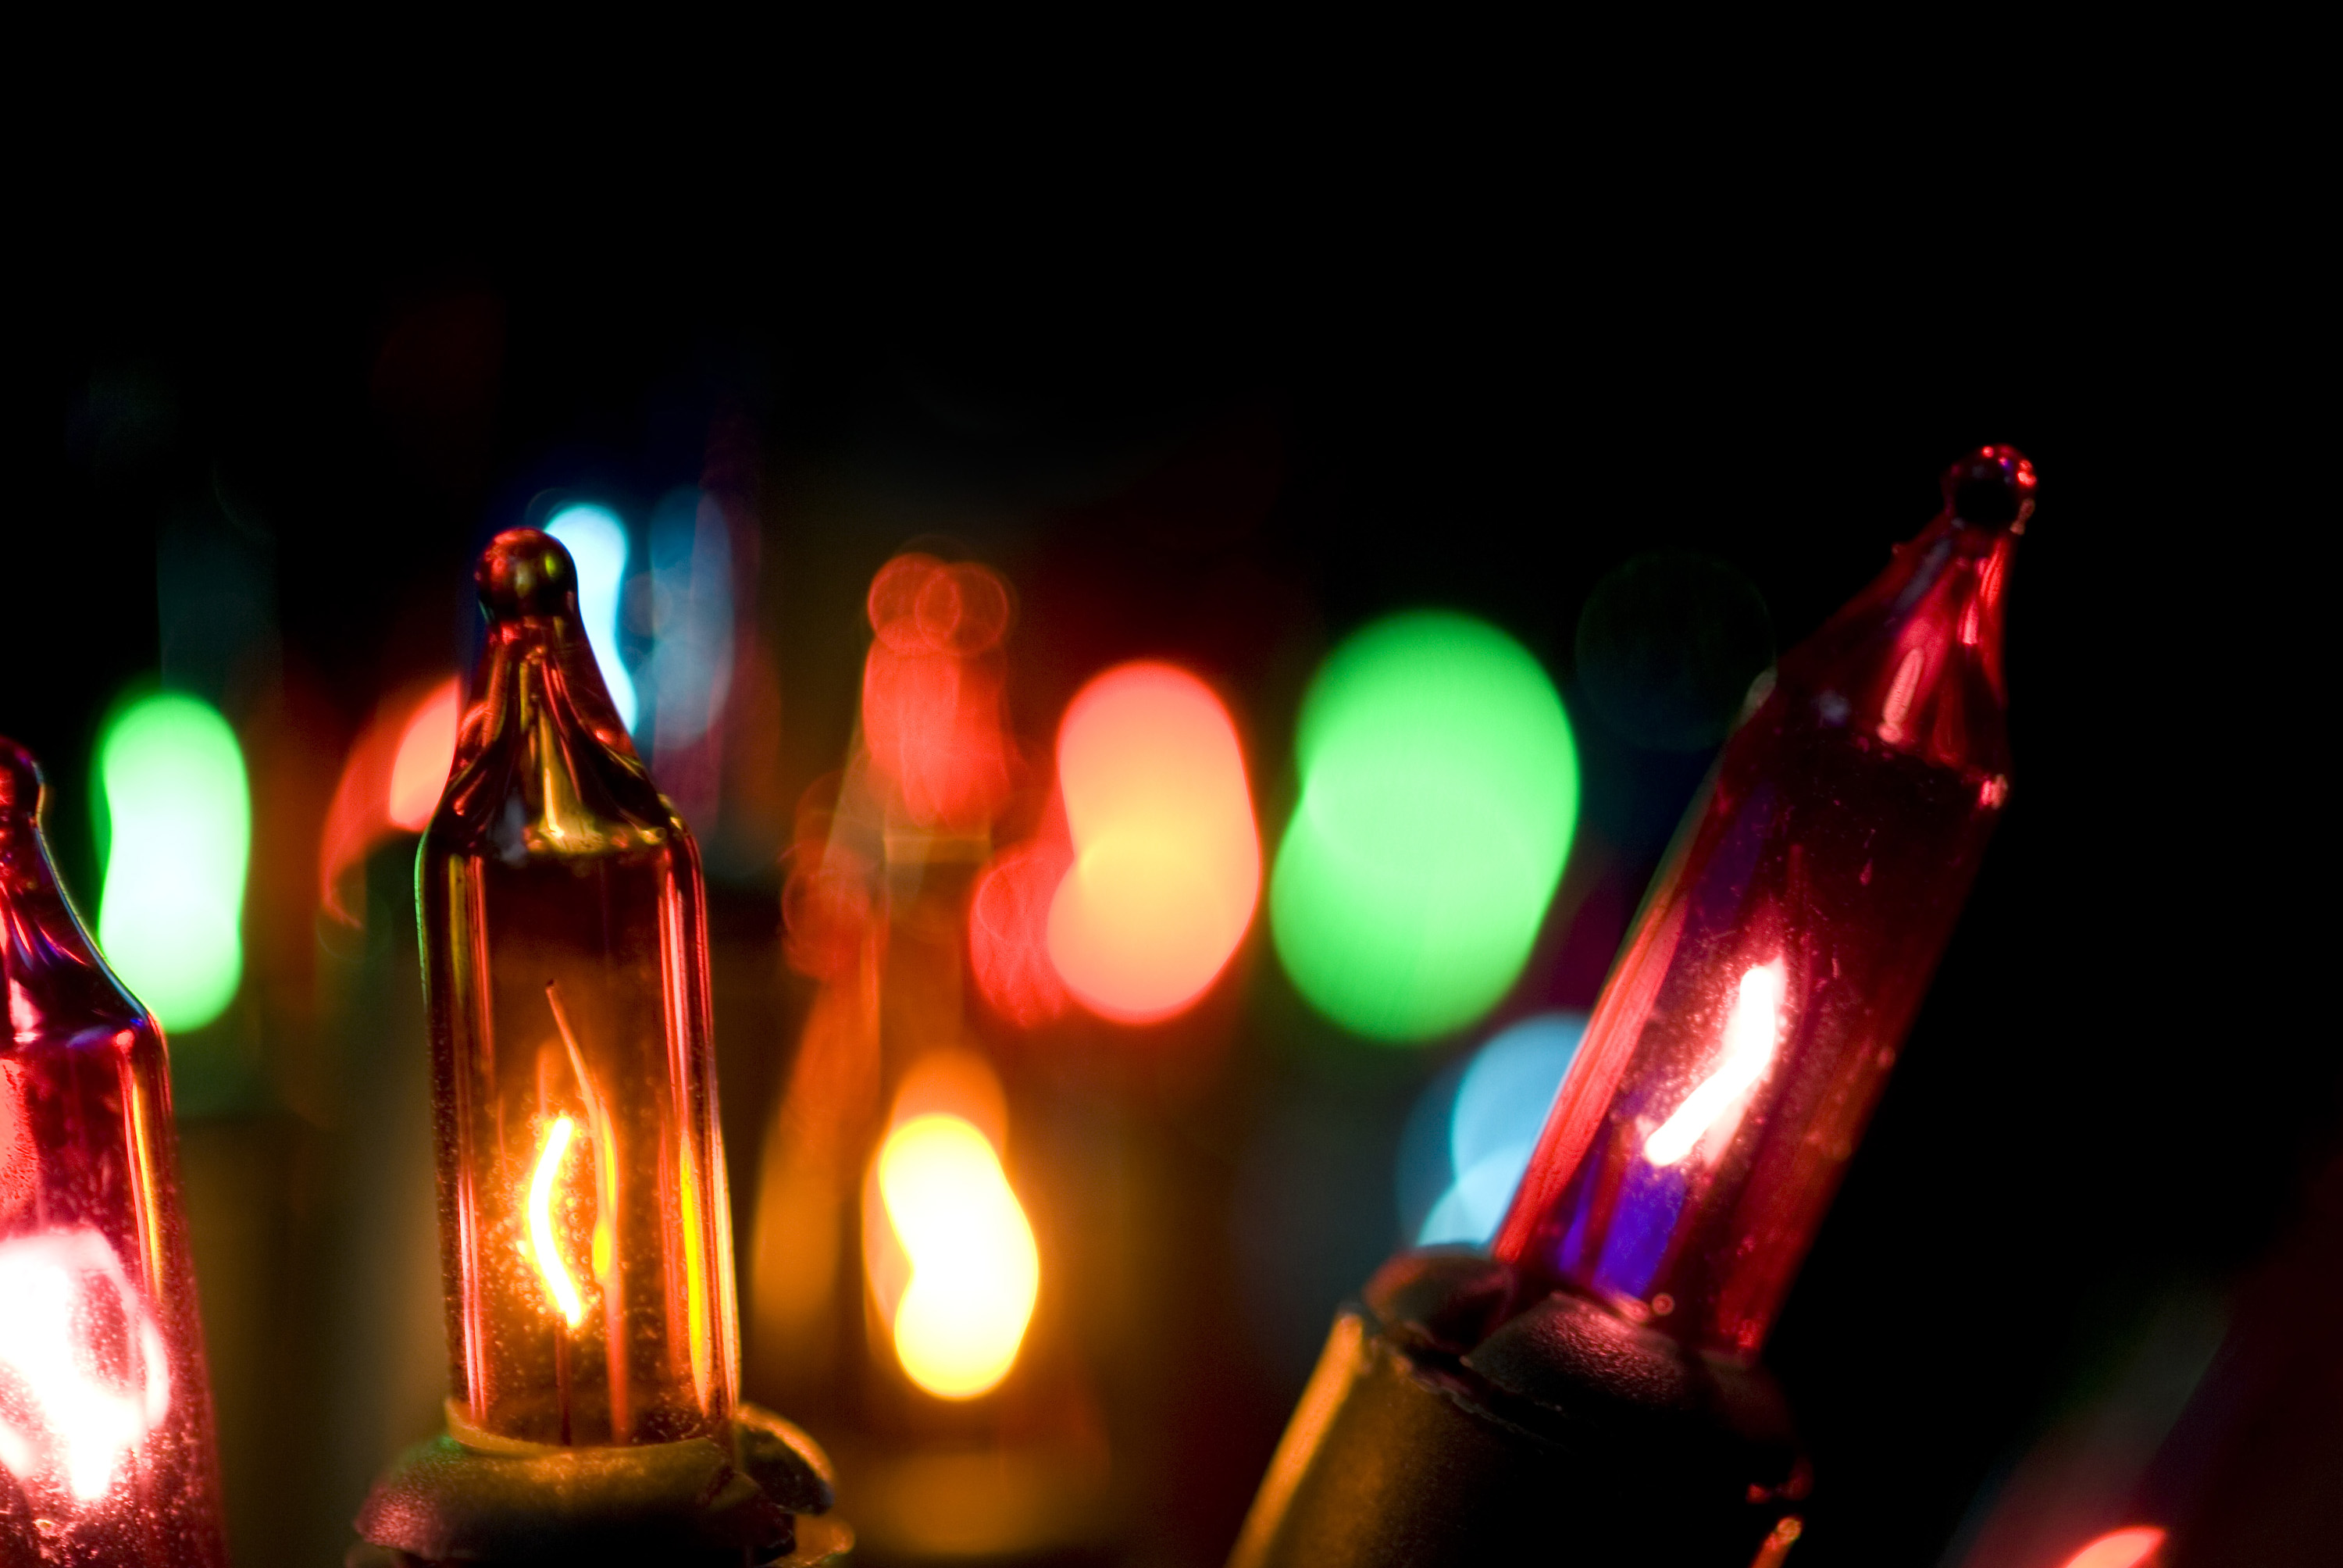 Incandescent Christmas Lights.Photo Of Colorful Festive Lights Free Christmas Images